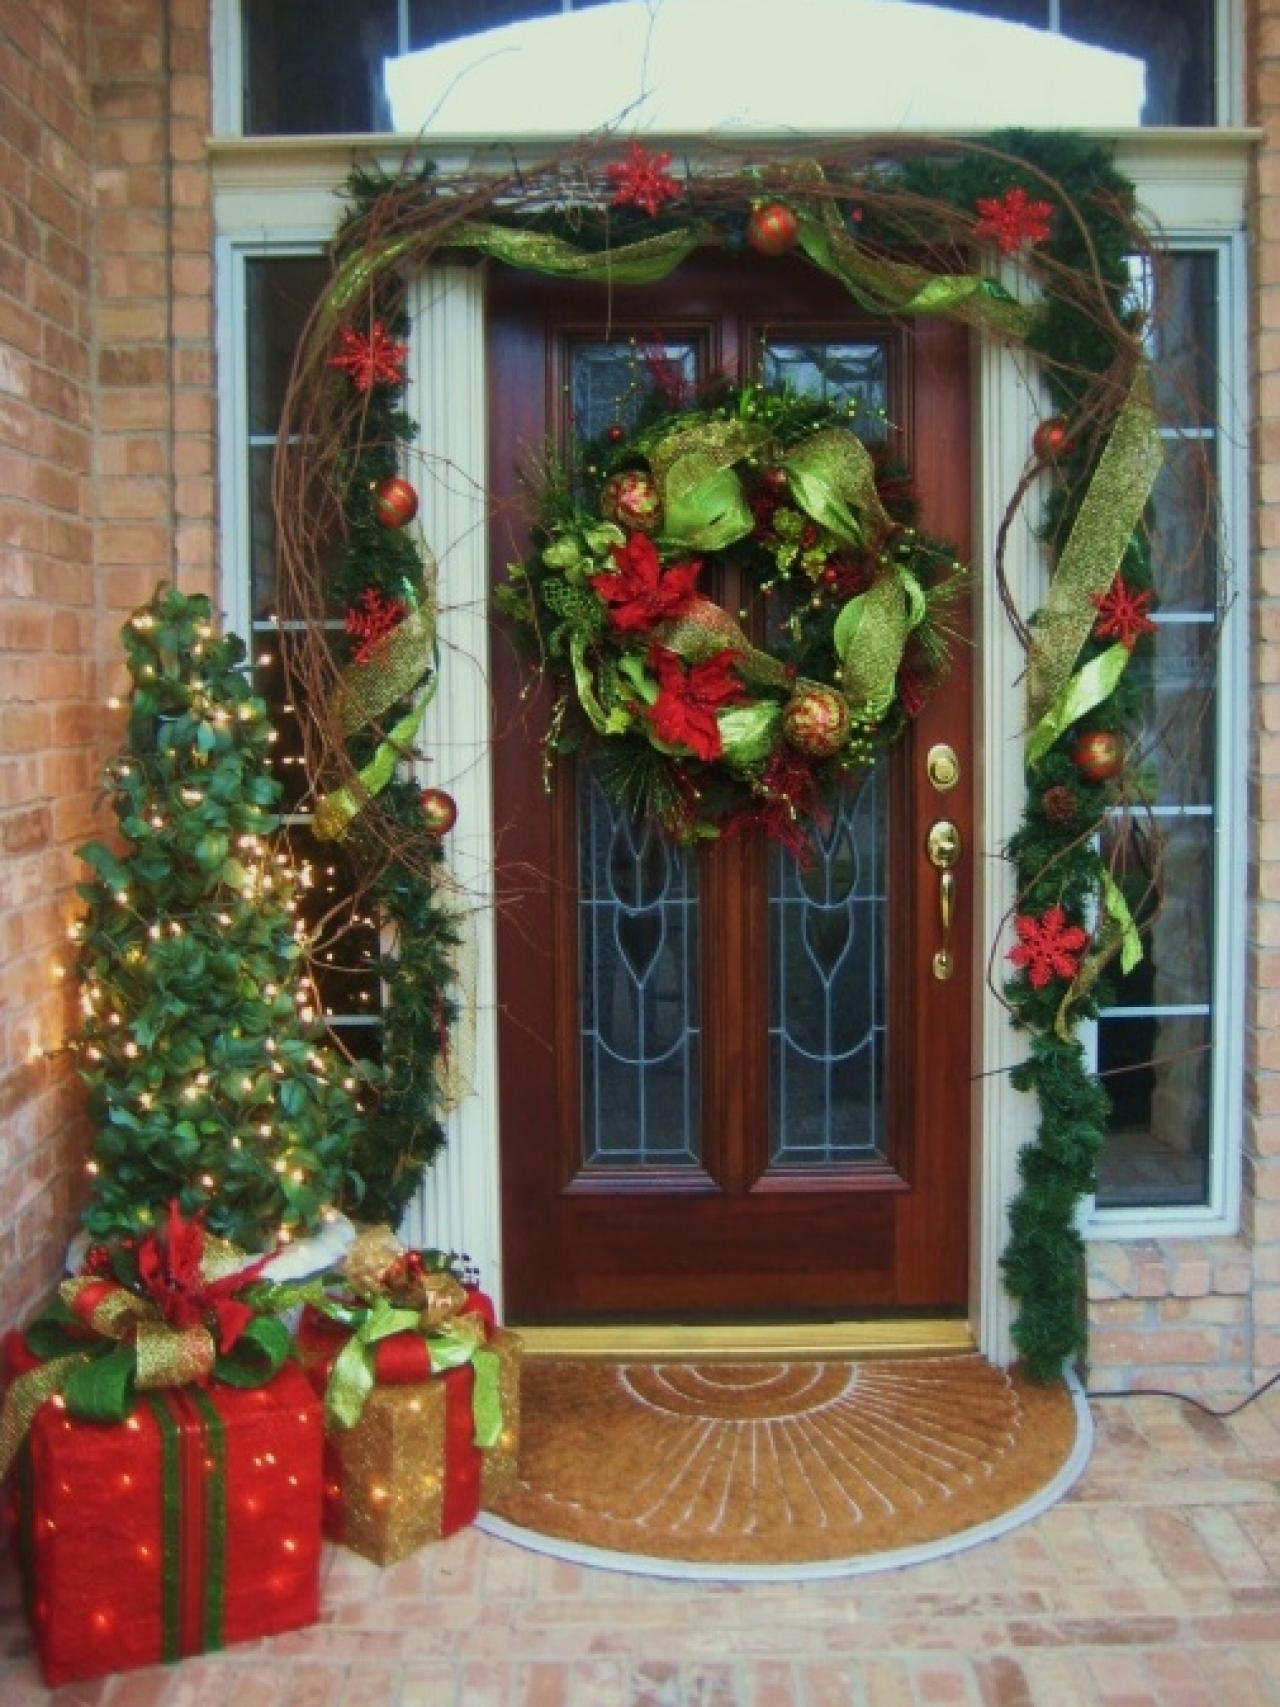 Christmas door decorations interior design styles and for Christmas home design